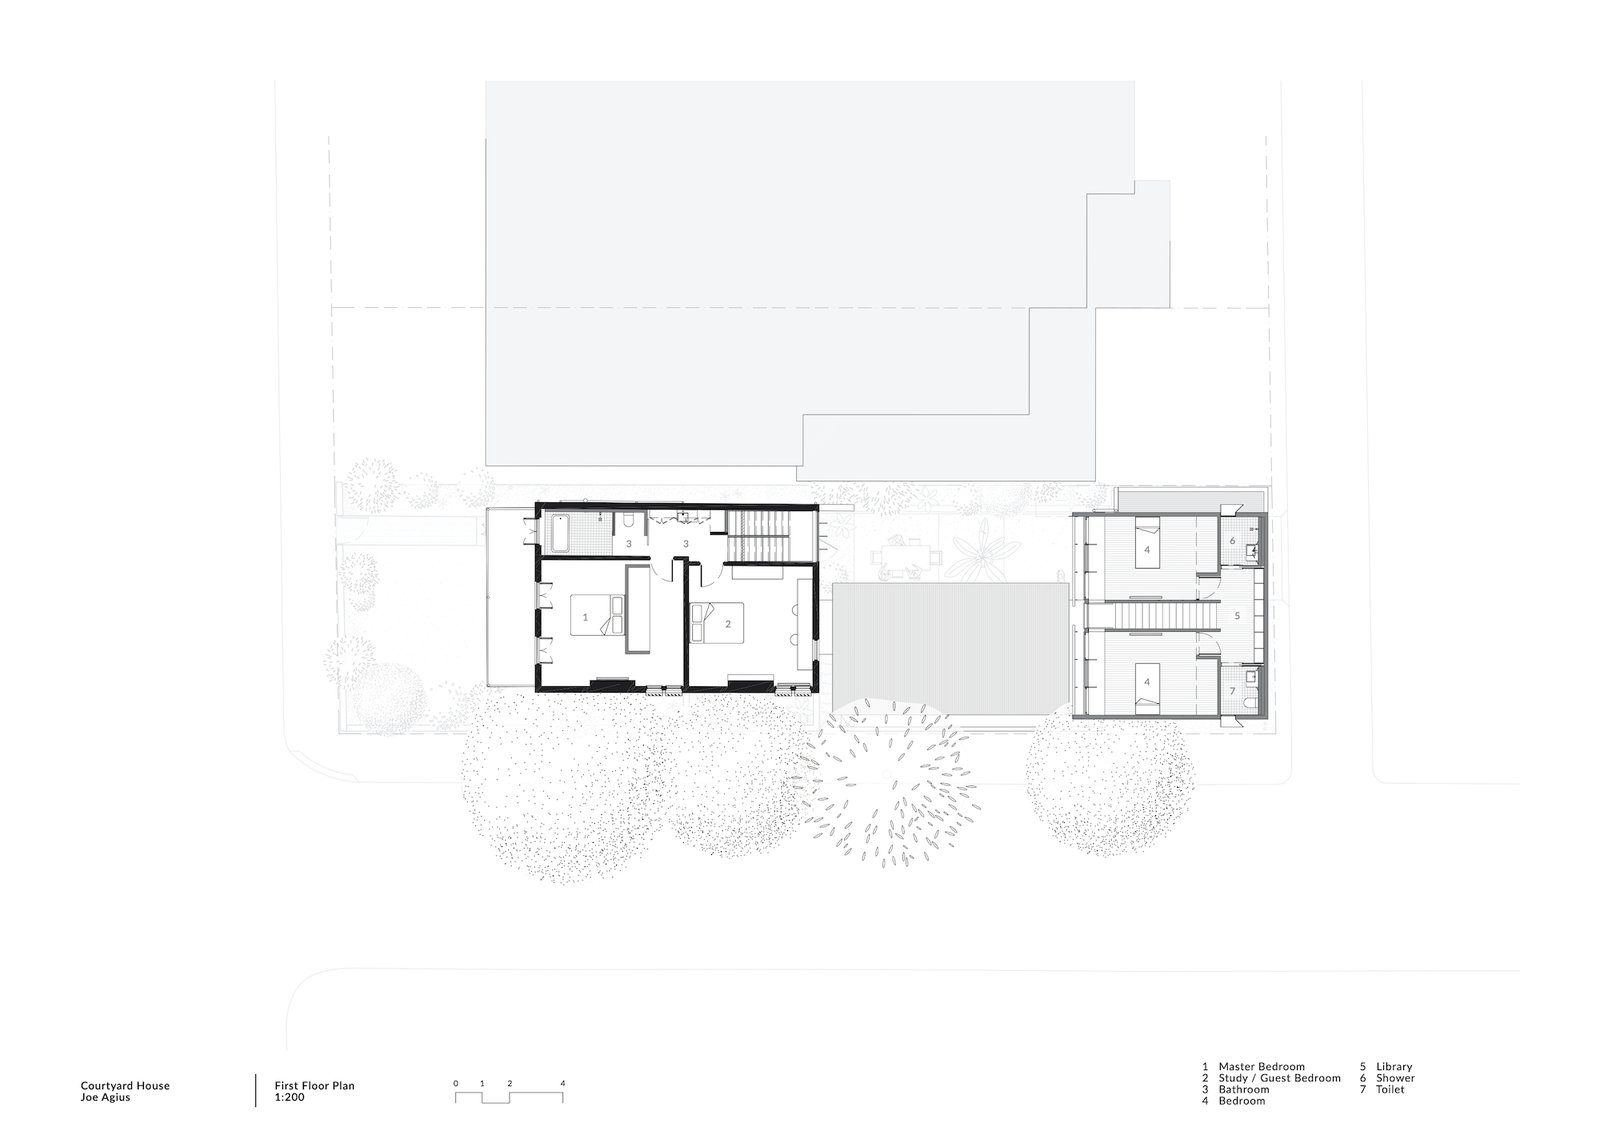 First floor plan of Courtyard House by COX.